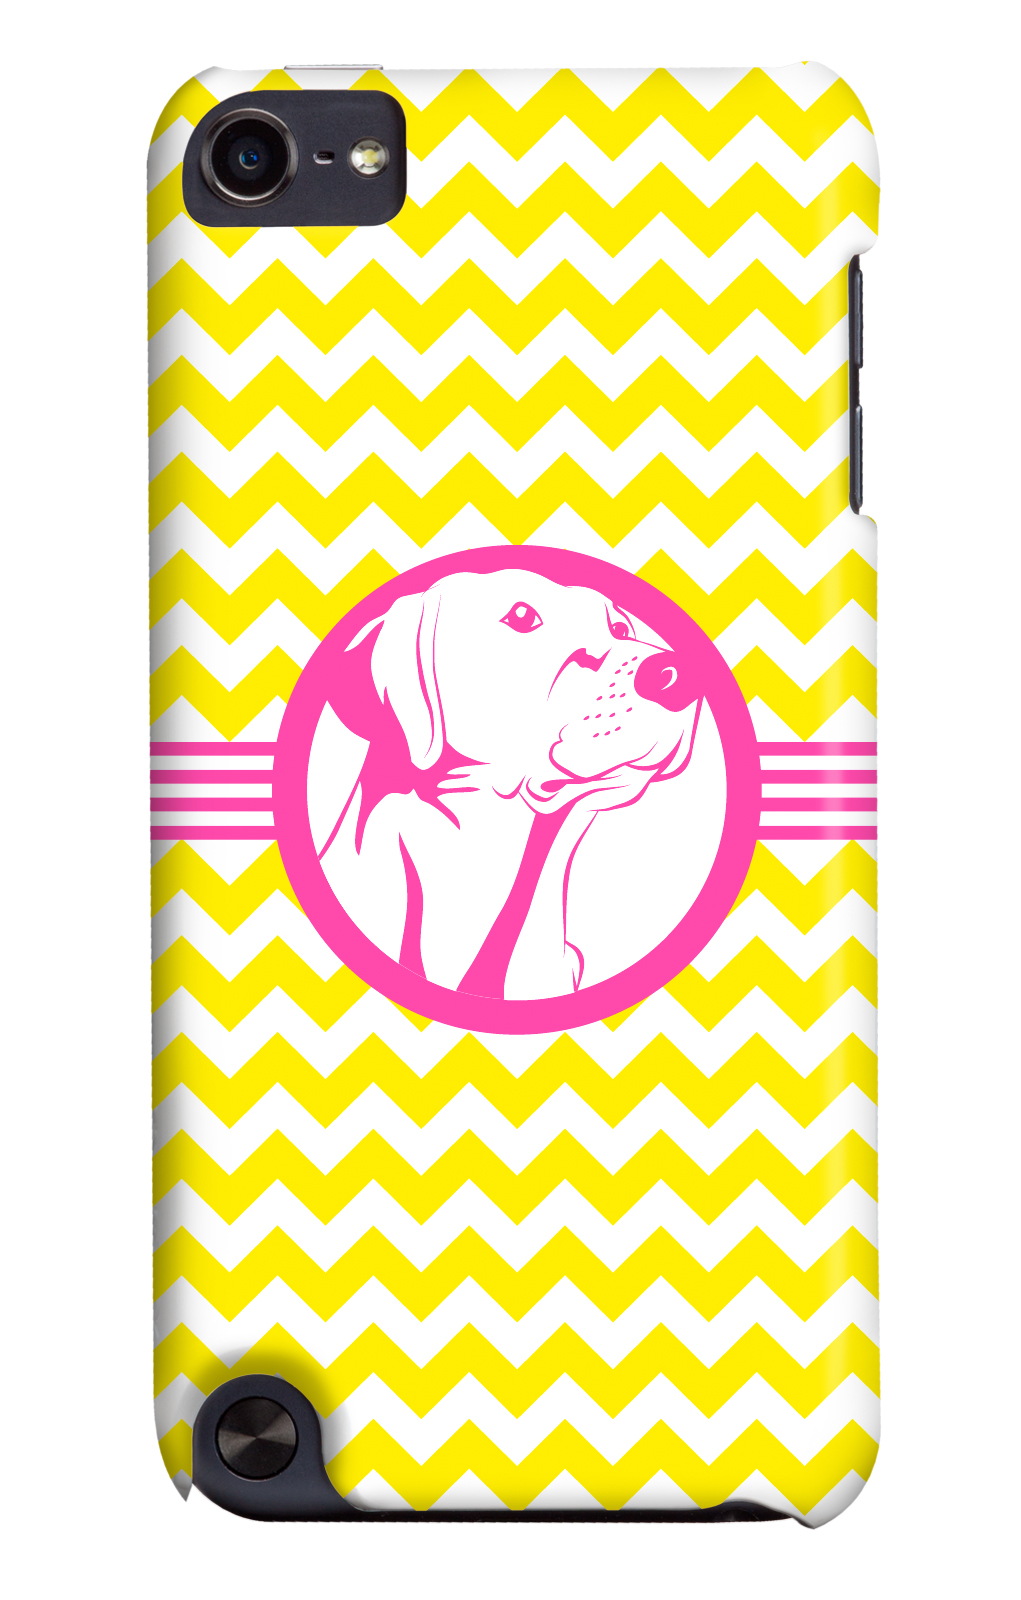 It's a Lab Thing Labrador iphone case 3 shades of dog yellow chevron-pink